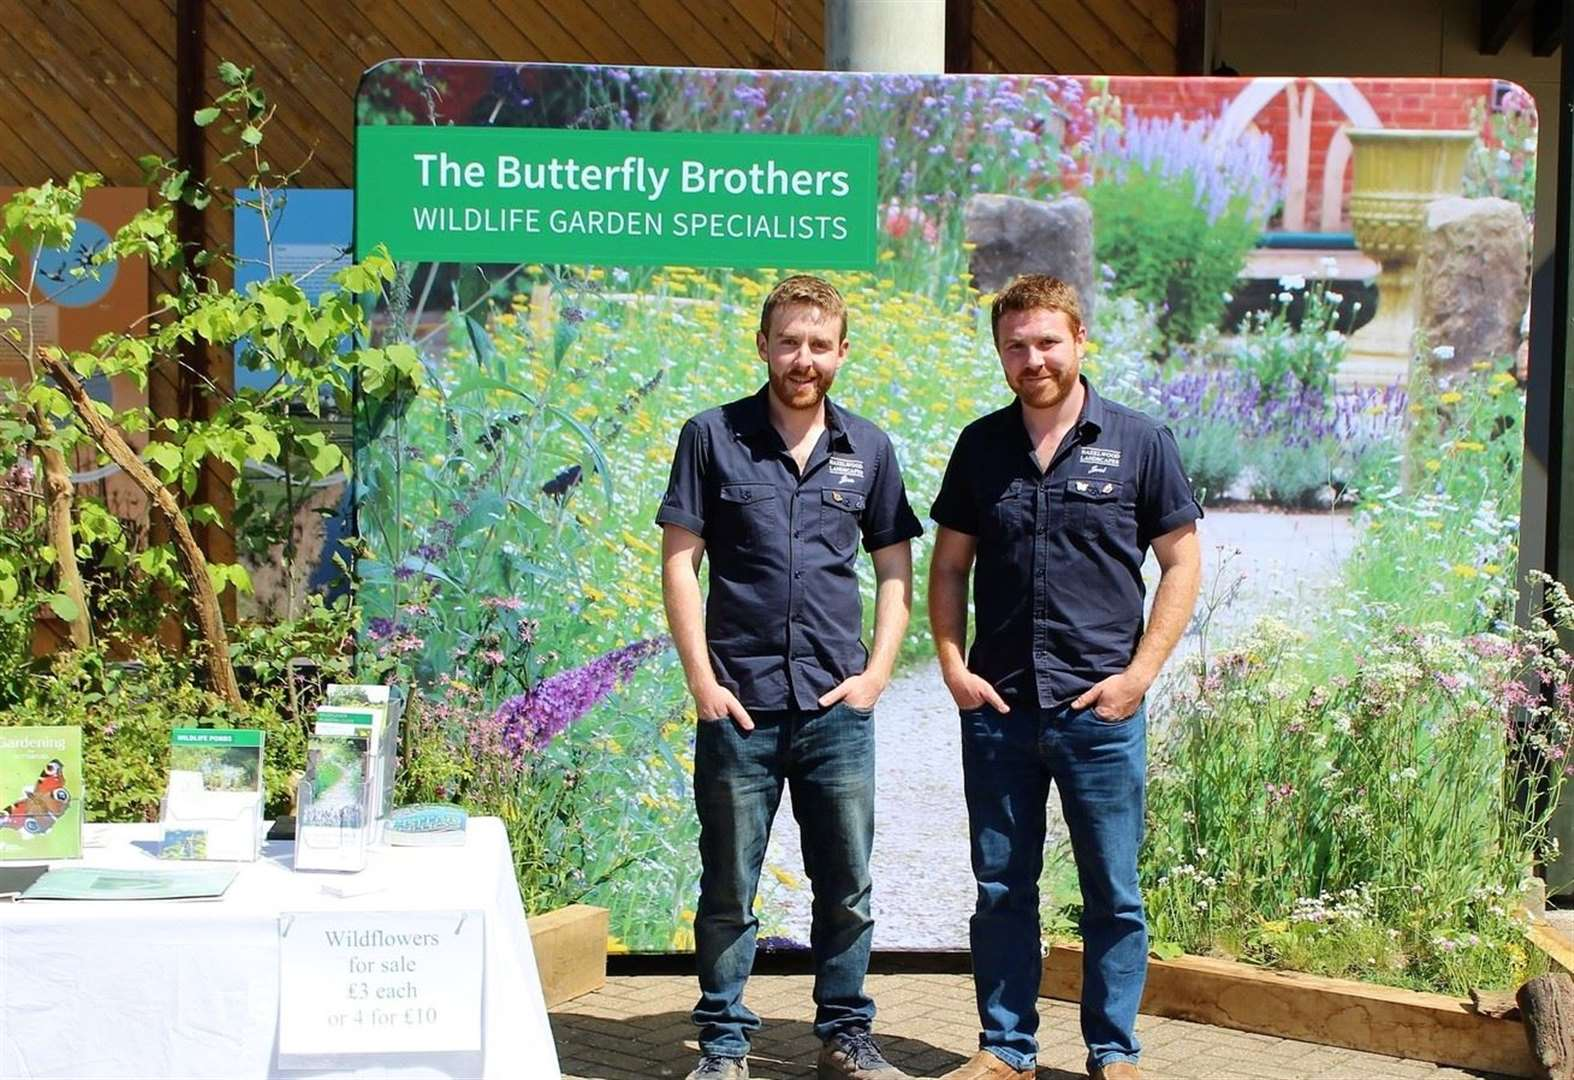 Butterfly Brothers of Bourne report 'horrendous' amount of work coming in after appearance on BBC2's Gardeners' World